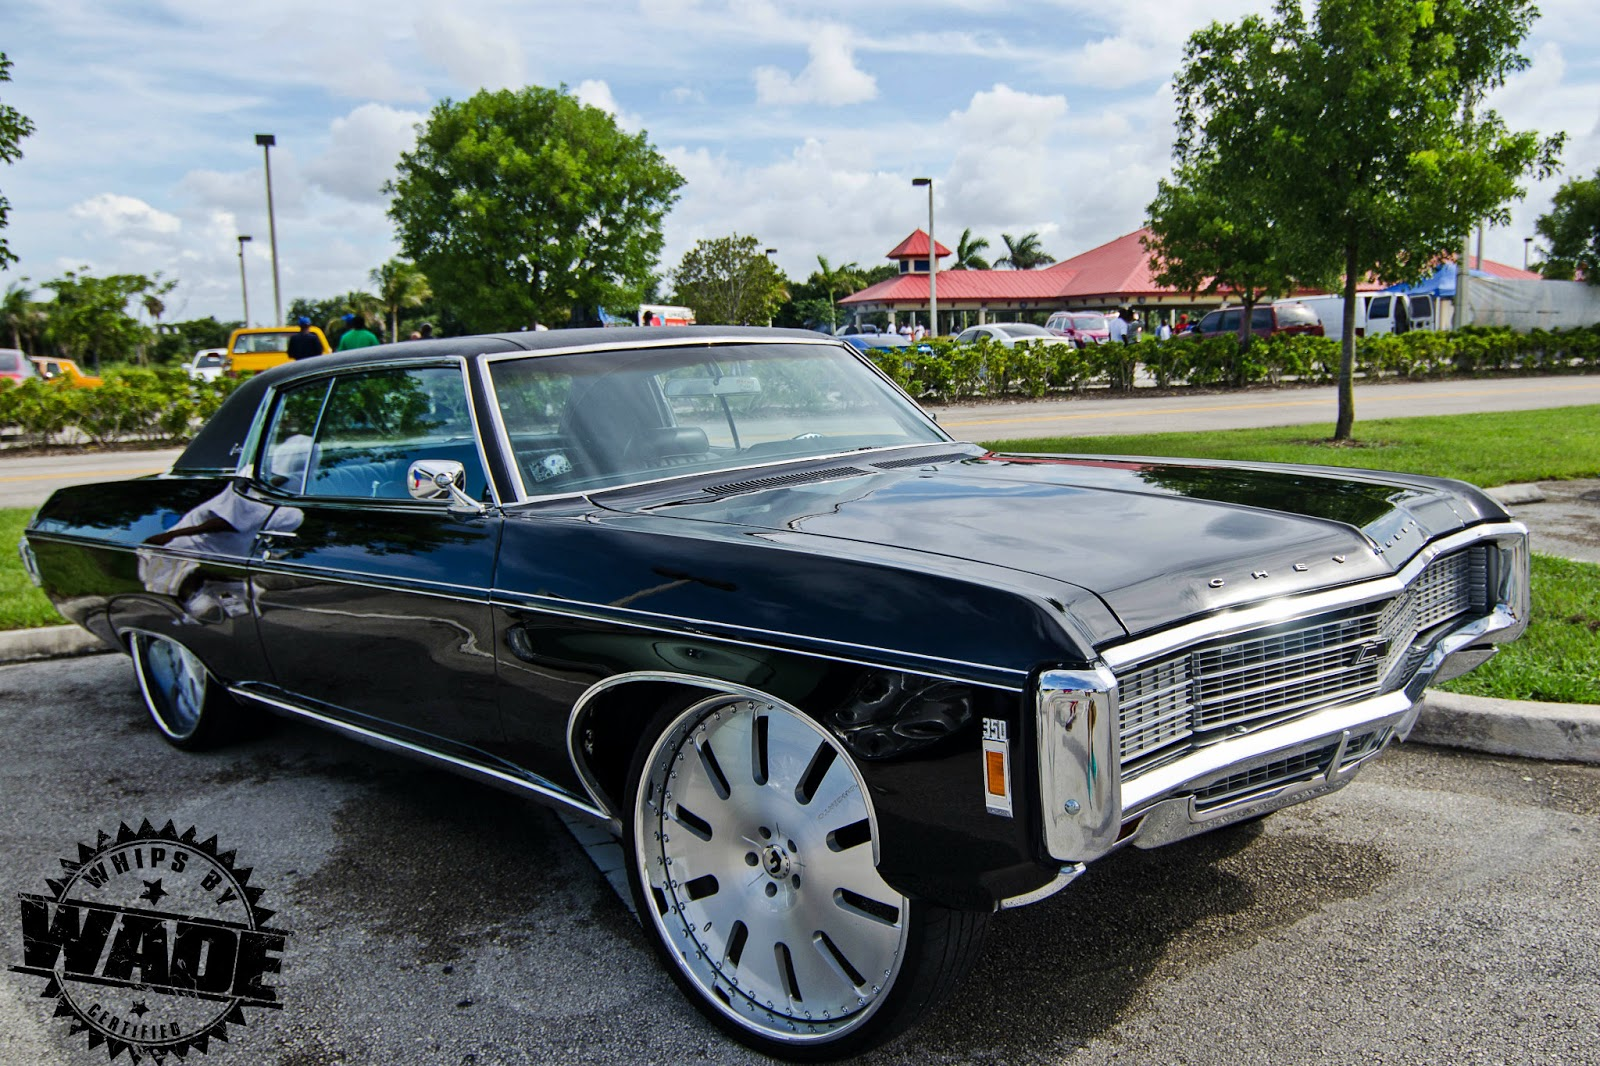 Whips By Wade: 1969 Chevrolet Caprice on Brushed 26